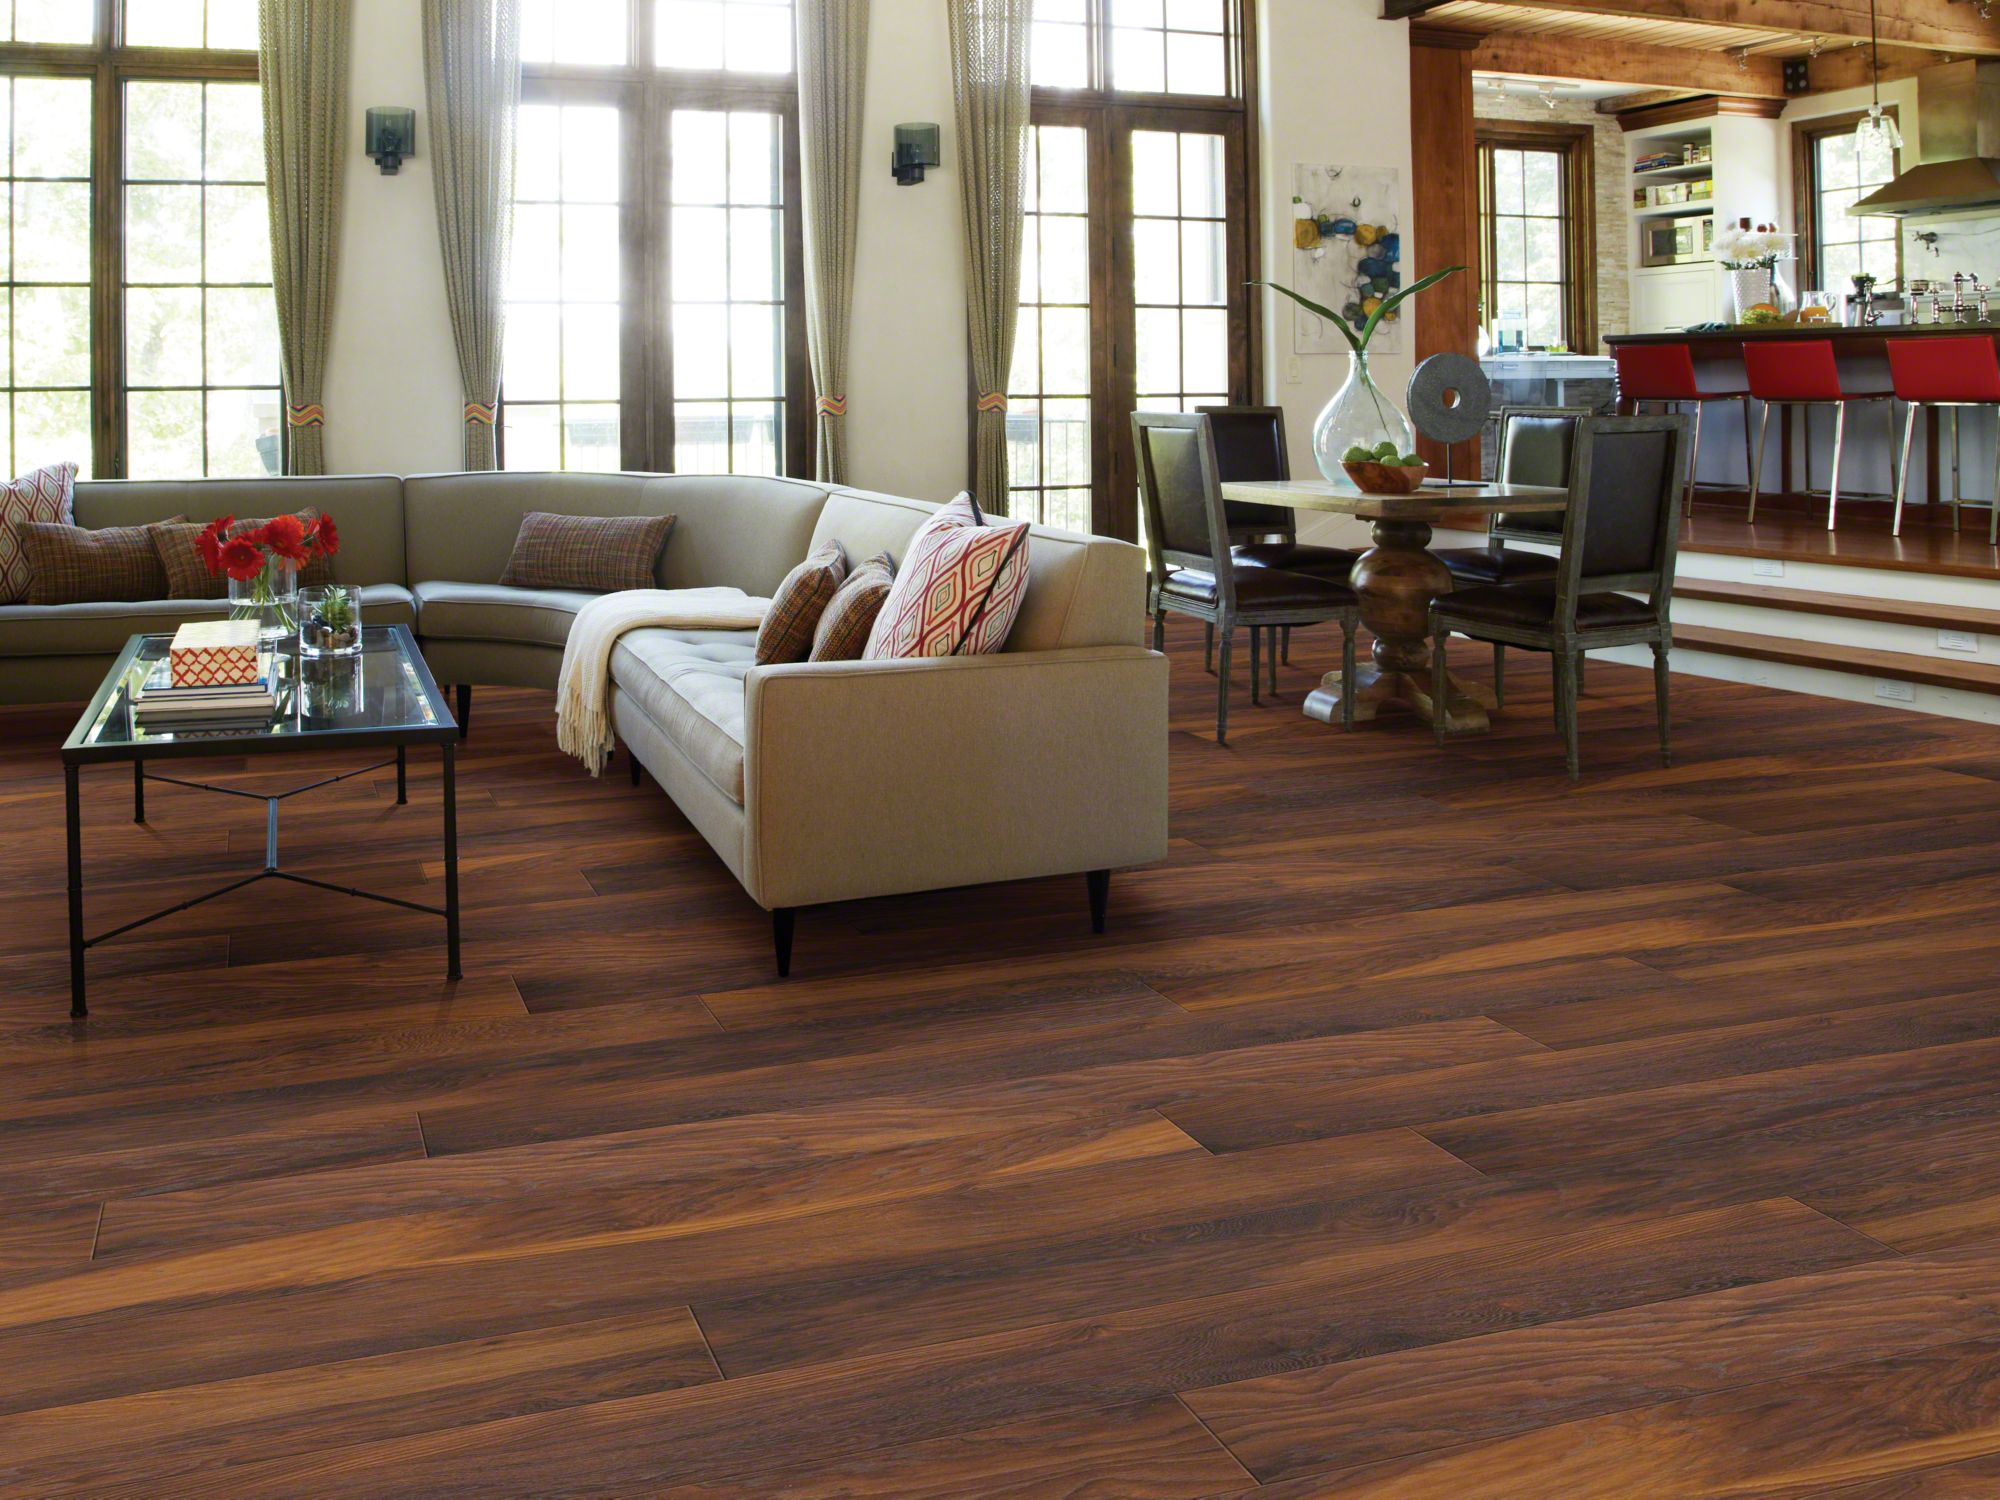 Laminate Wood Flooring for Extra Classiness in Your Home